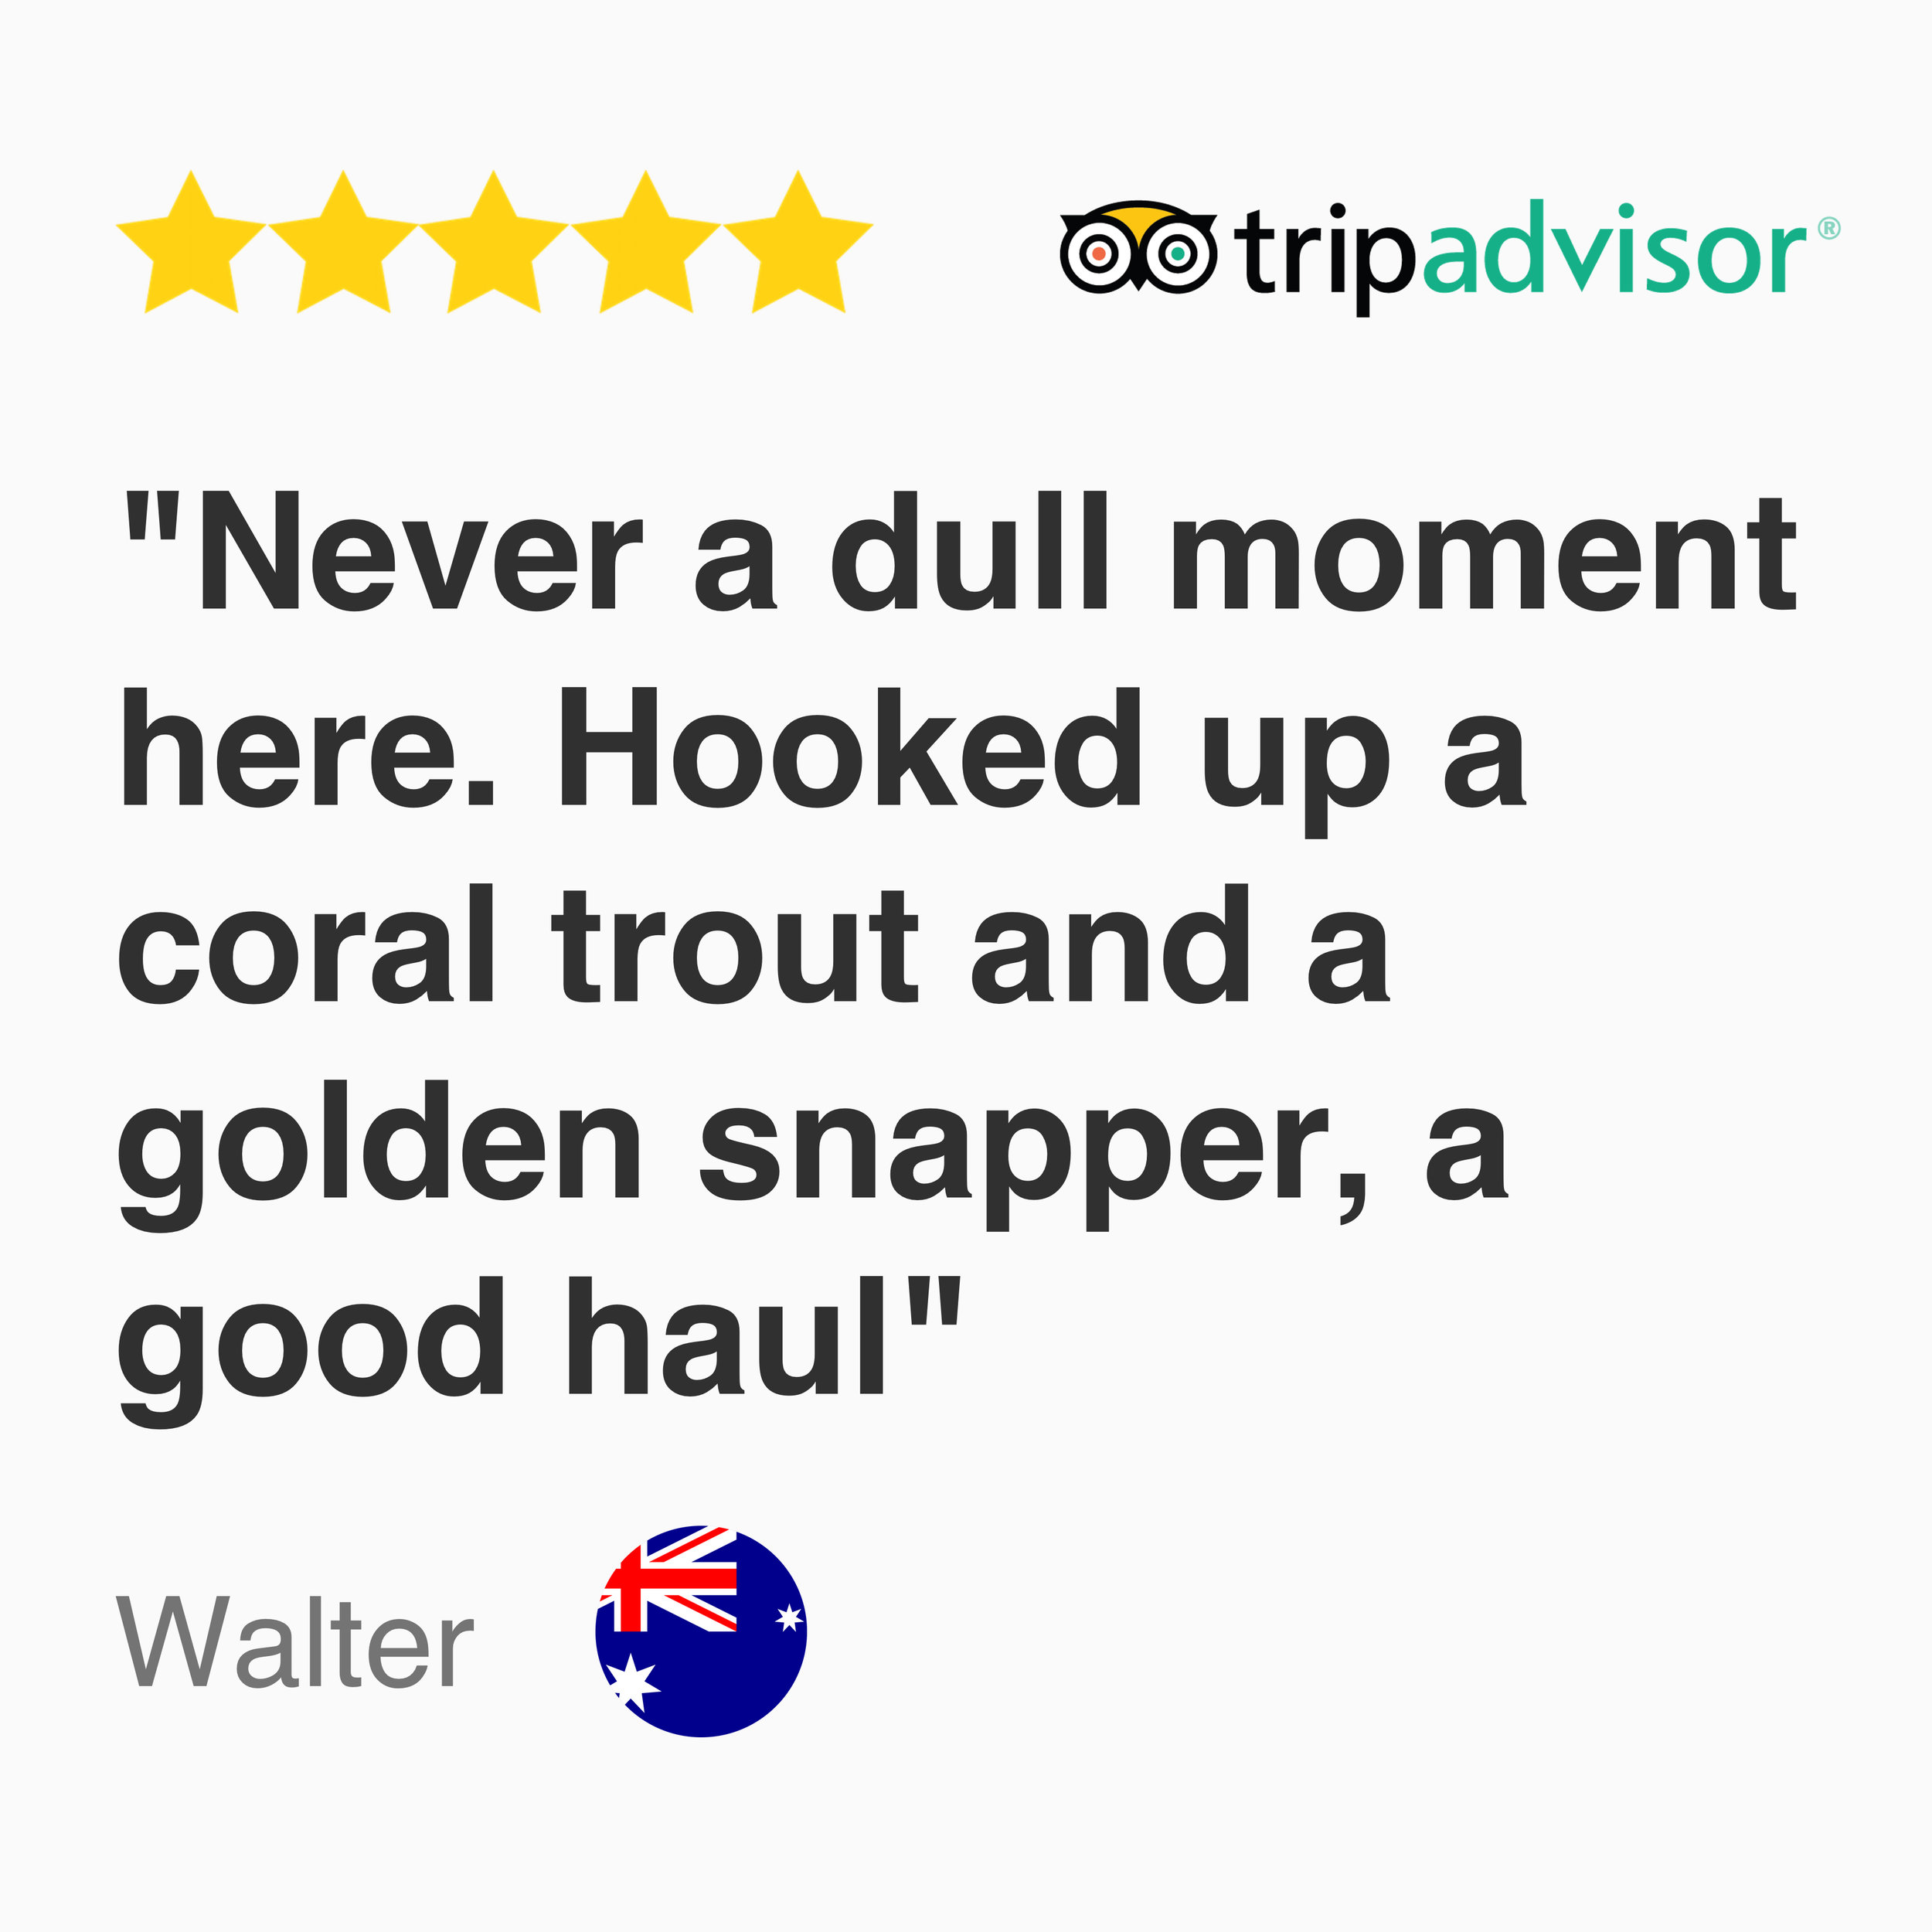 tripadvisor review for kayak fishing tour singapore: Never a dull moment here. Hooked up a coral trout and a golden snapper, a good haul